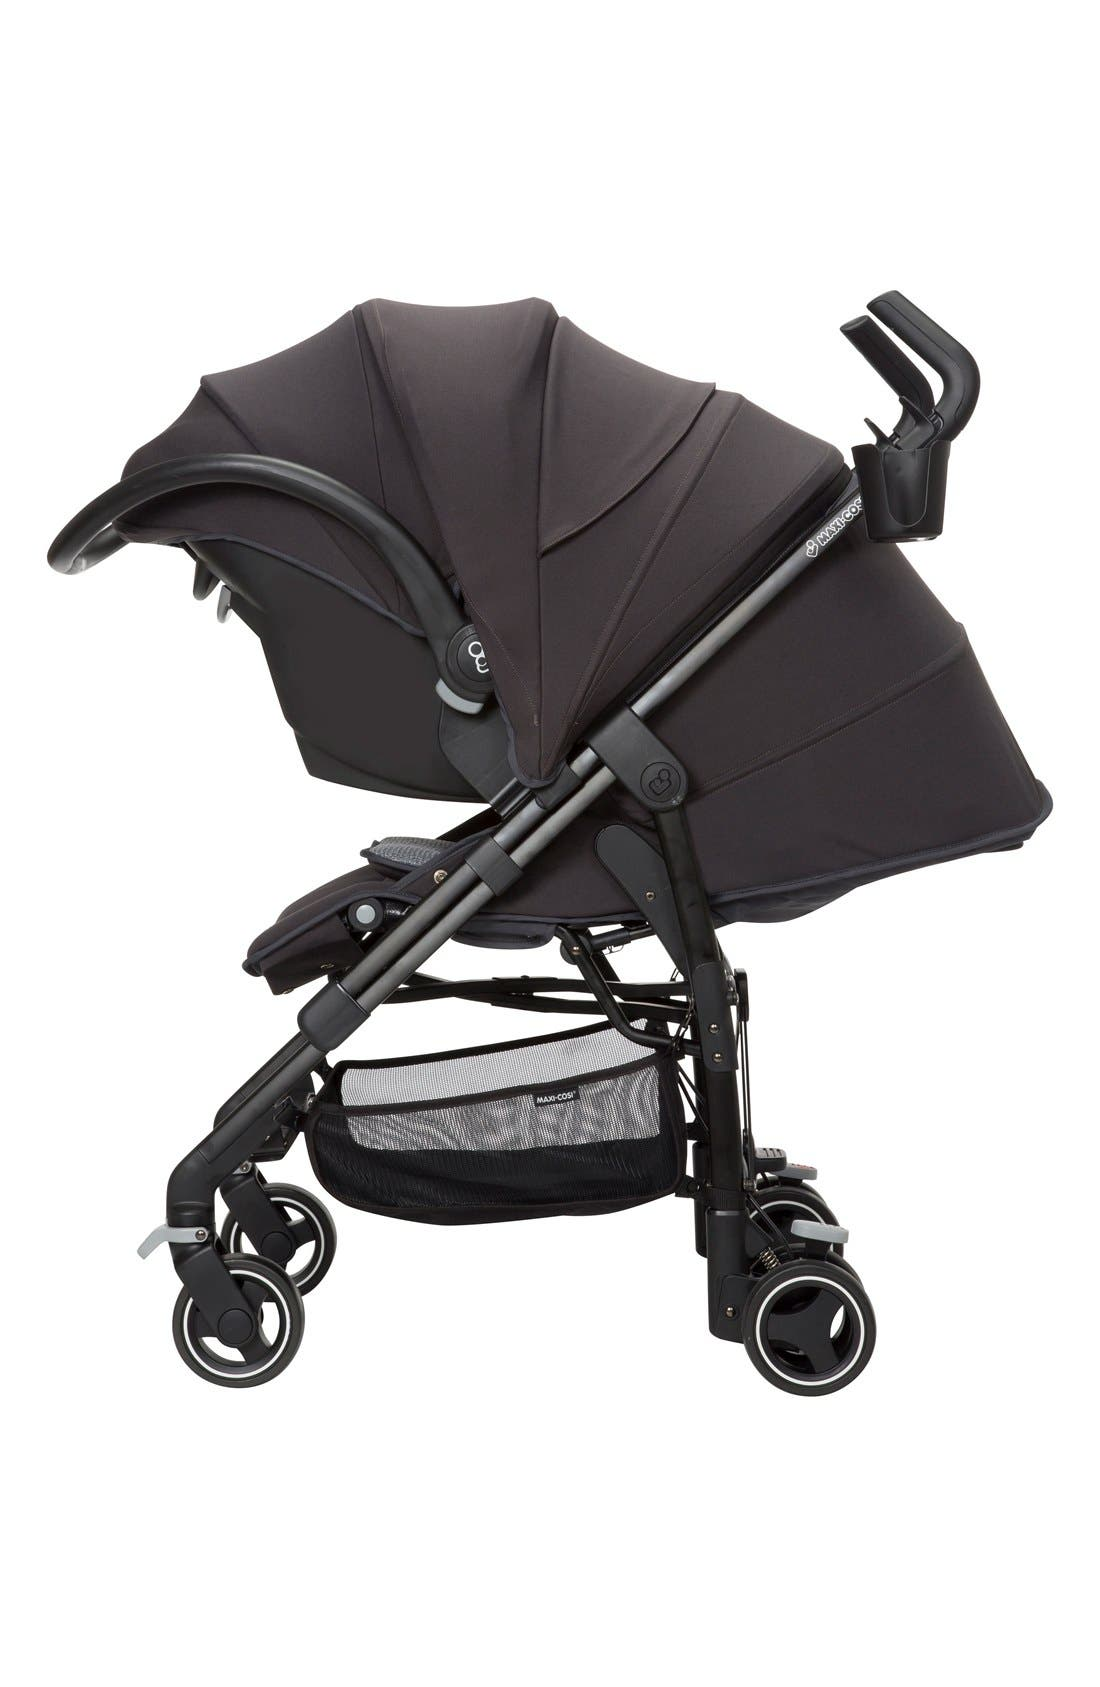 Dana Sweater Knit Special Edition Stroller,                             Alternate thumbnail 8, color,                             024